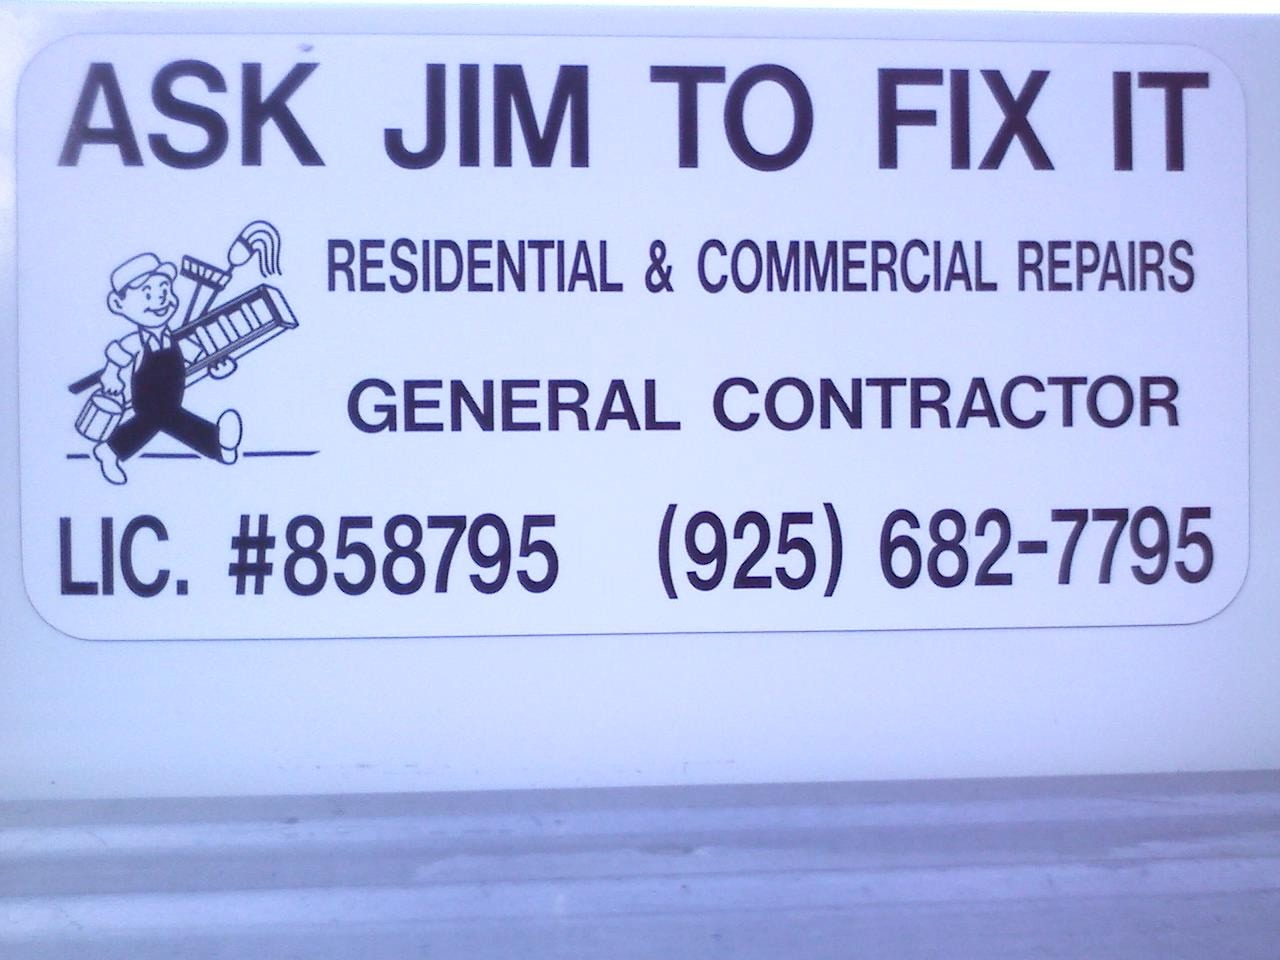 ASK JIM TO FIX IT